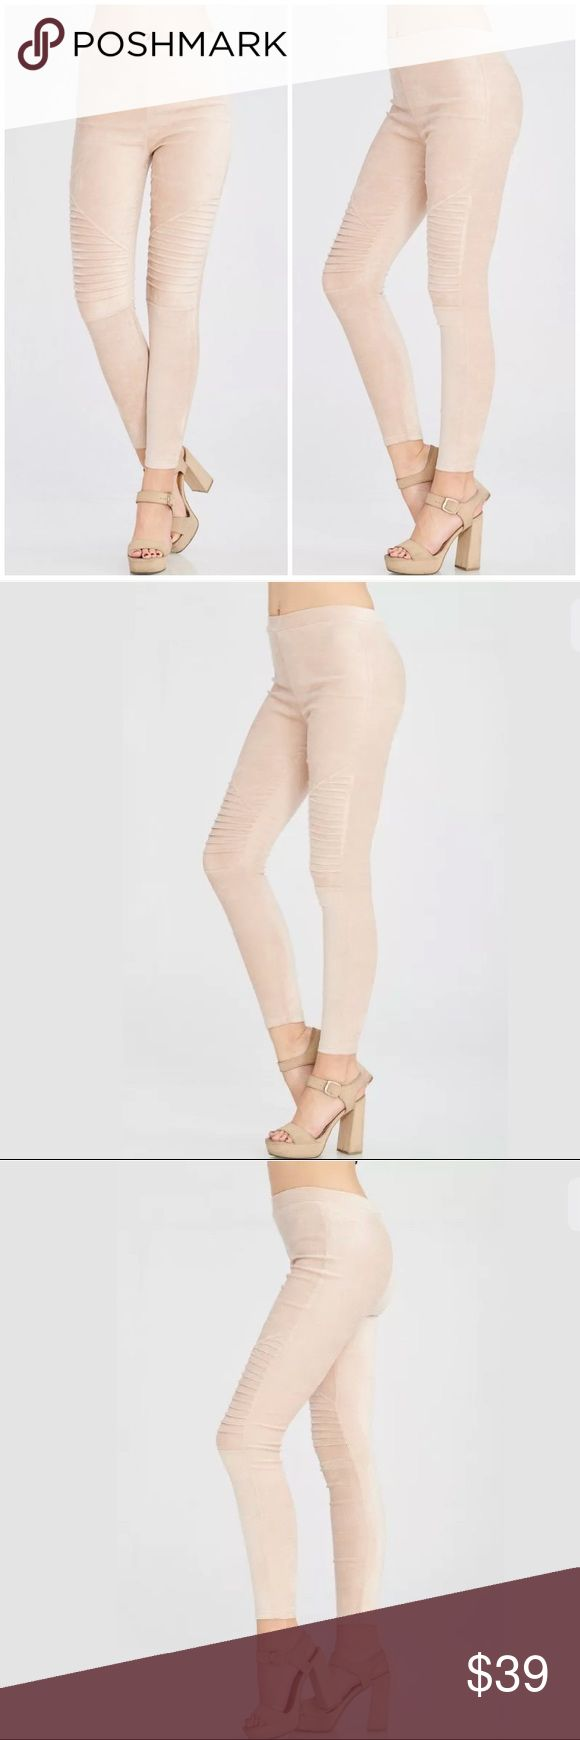 Light Taupe Faux Suede Moto Stretch Leggings Featuring a gorgeous pair of faux suede mid rise leggings with pintucks at the knee creating a trendy moto style look. Soft stretchy and comfortable. Full long length.   Available in an array of colors in our store!   Made of: 92% Polyester & 8% Spandex Pants Leggings